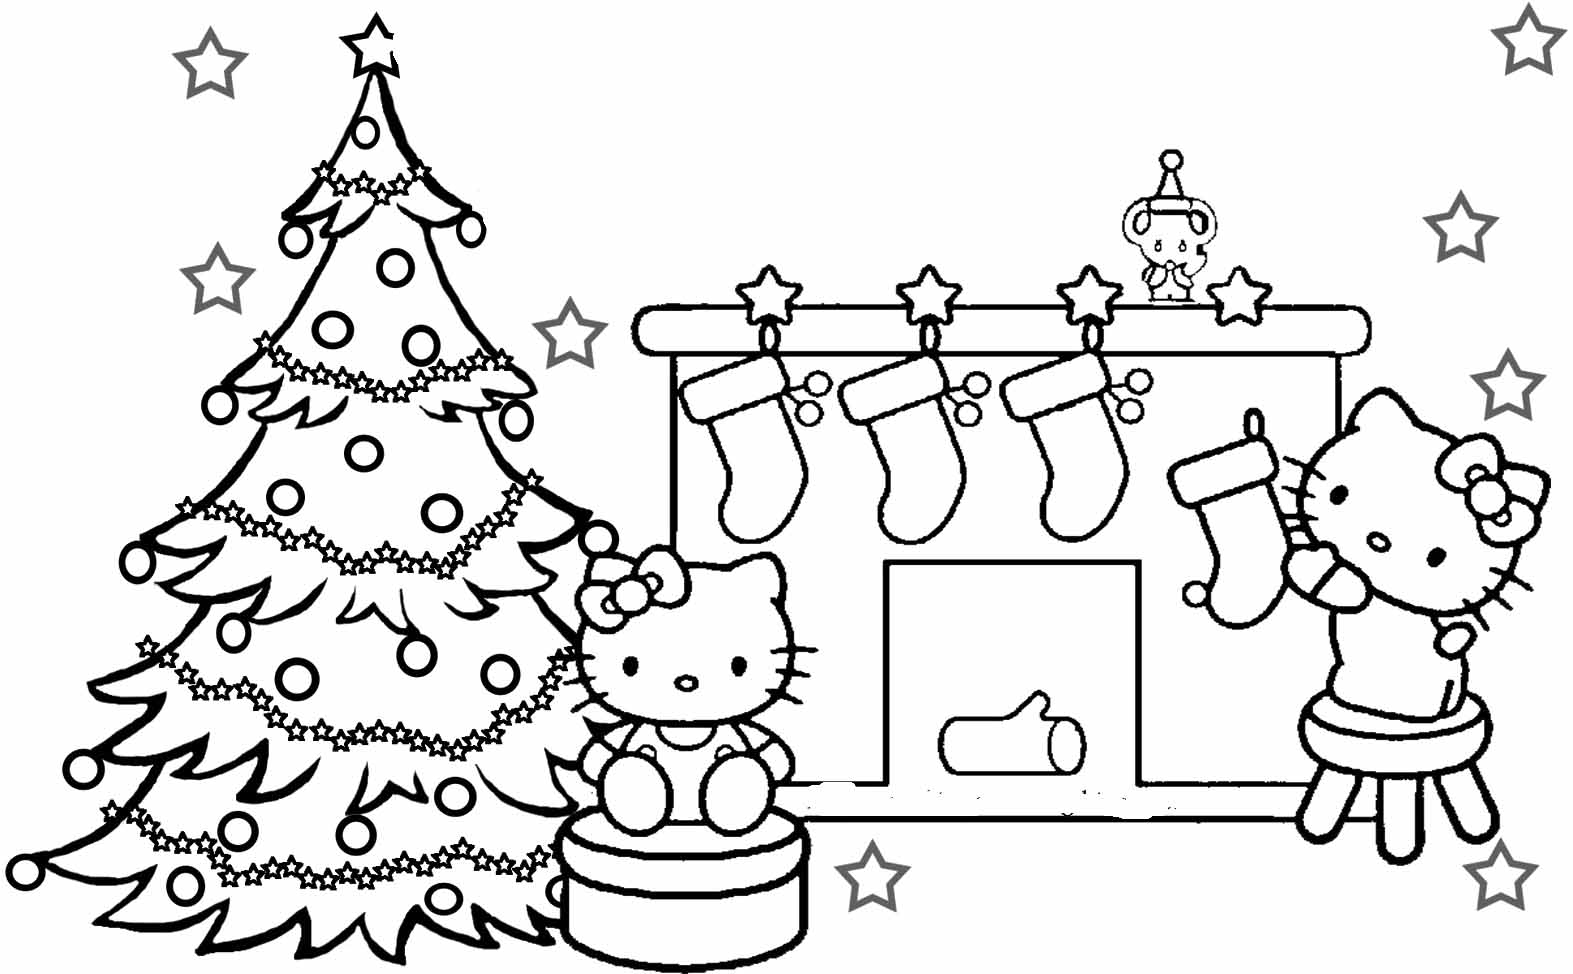 free disney princess coloring pages - hello kitty coloring pages christmas